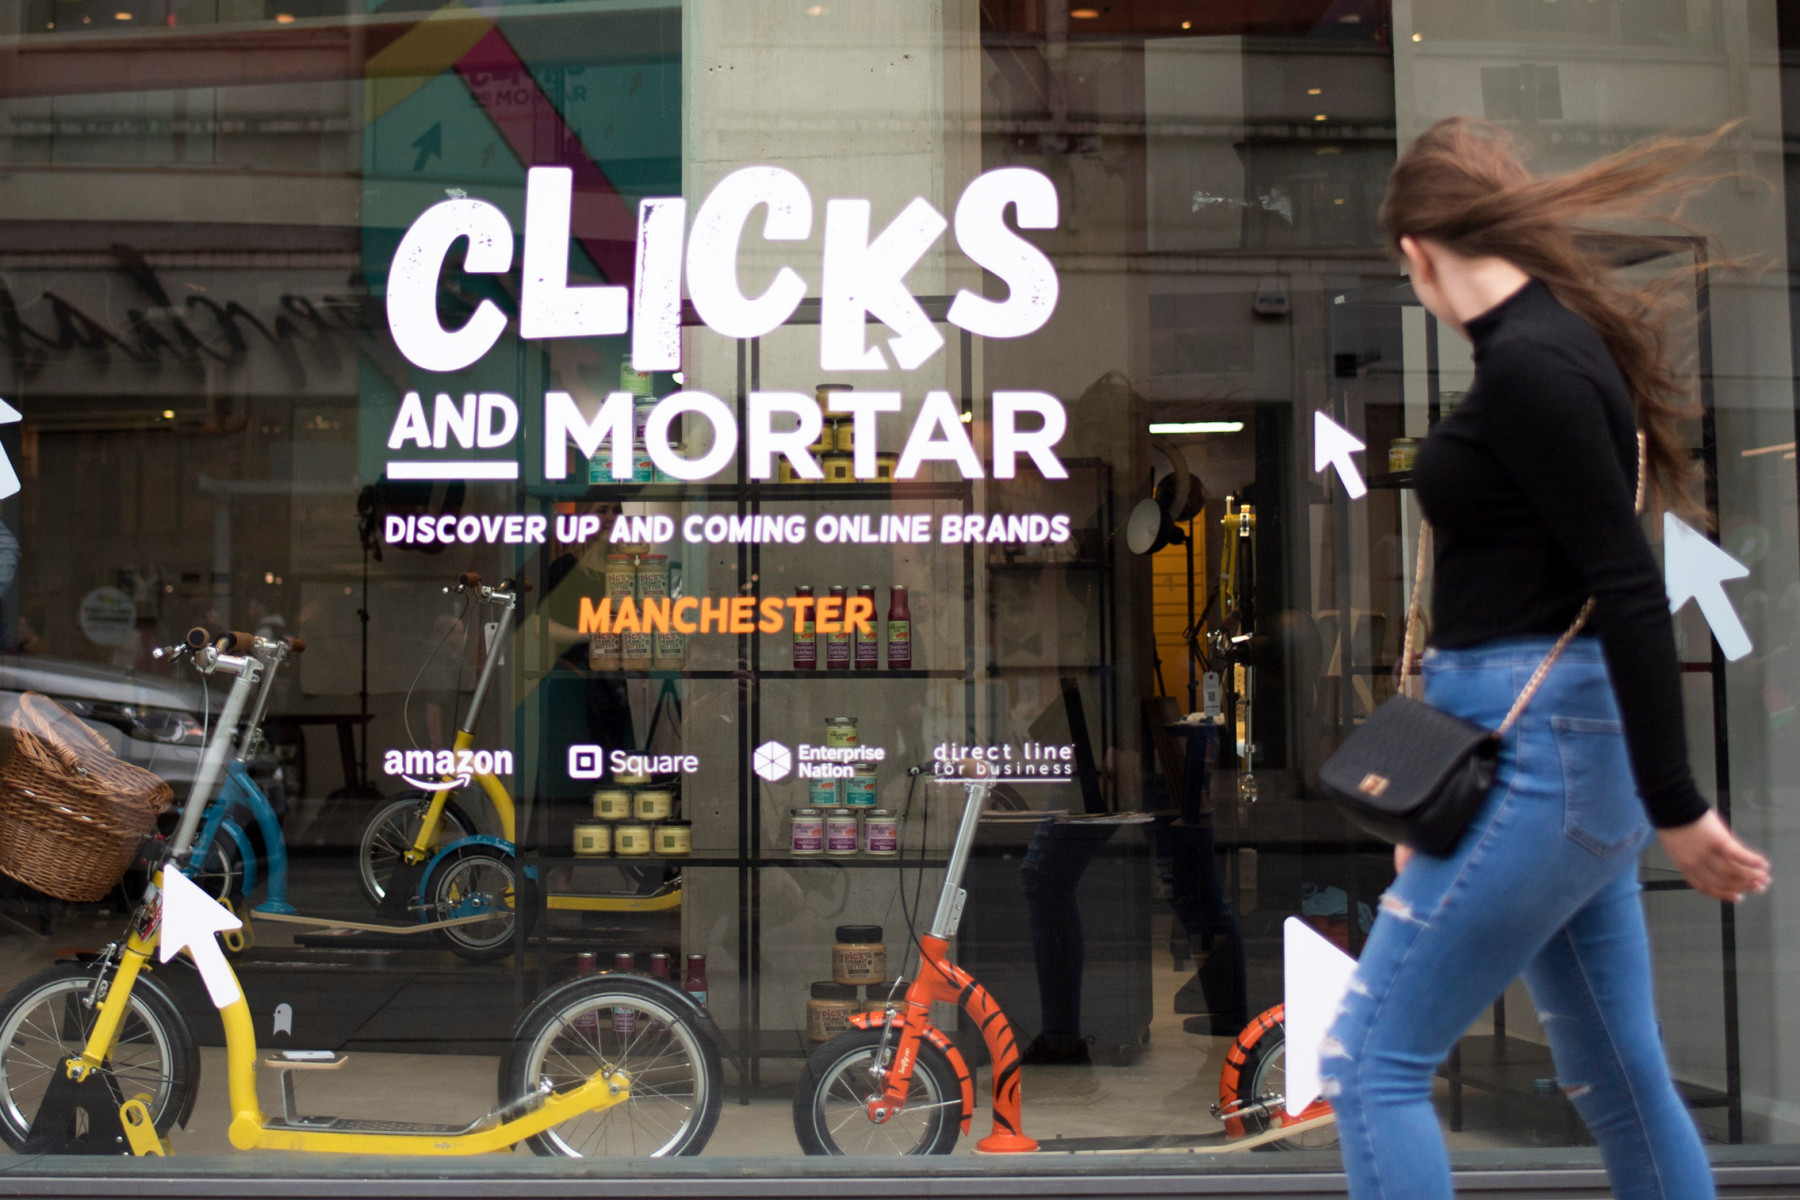 Amazon launches 'Clicks and Mortar' programme to help small businesses grow